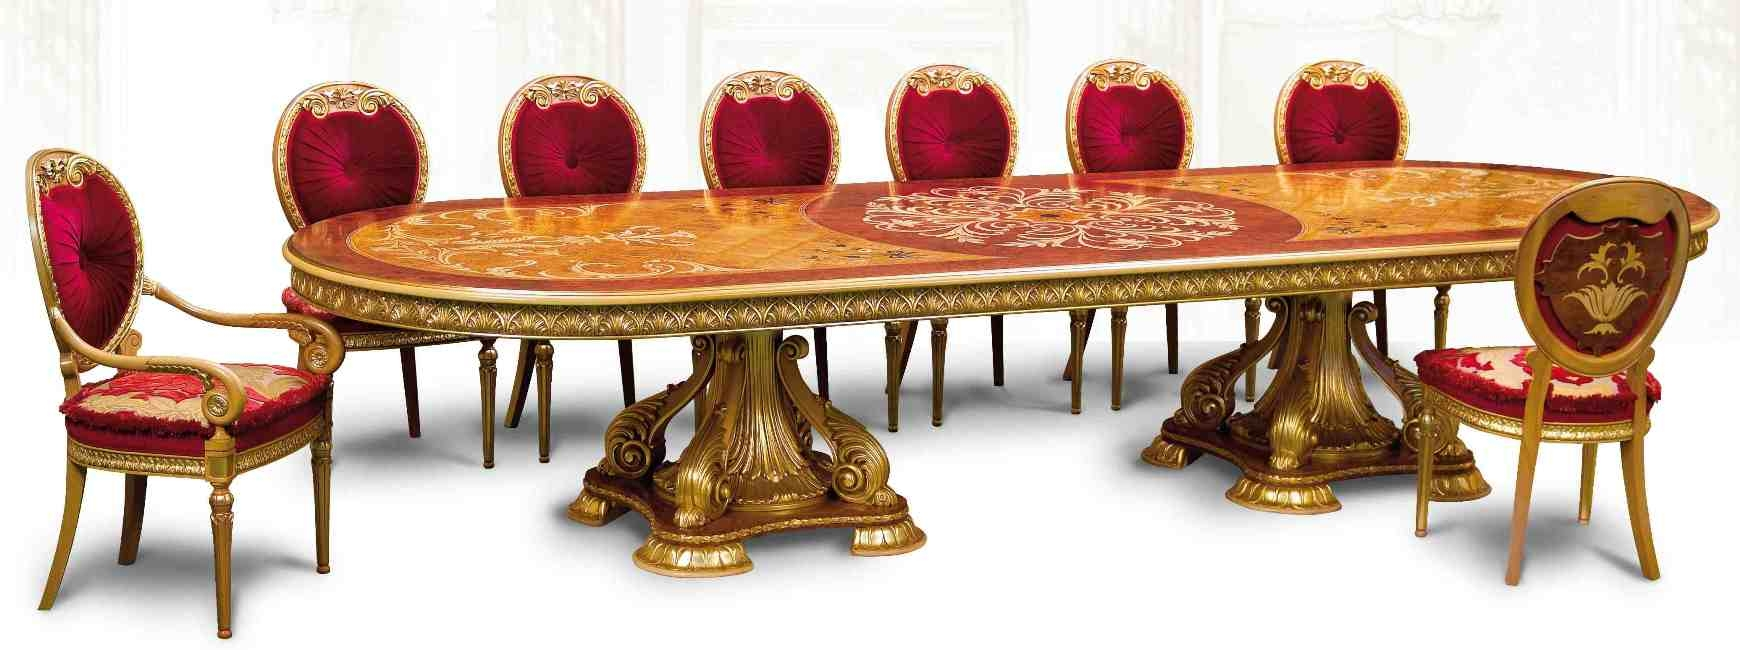 Luxury handmade furniture empire style dining table for Expensive dining tables